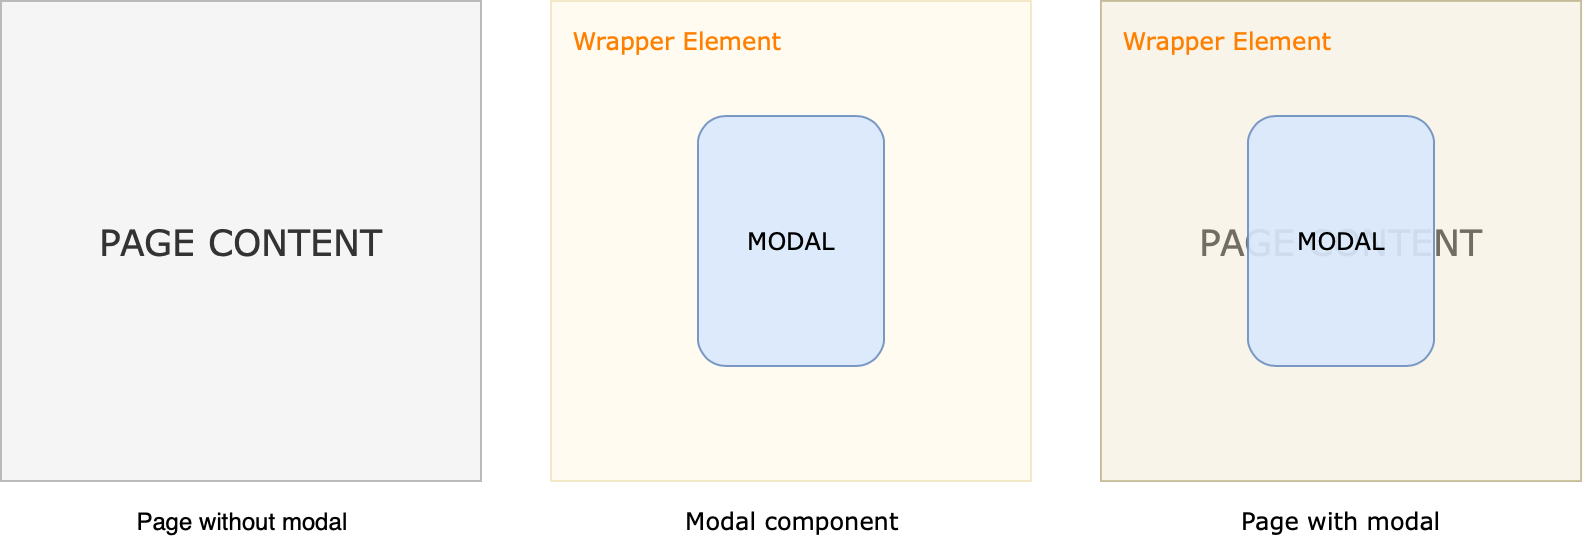 An example of a modal router element.